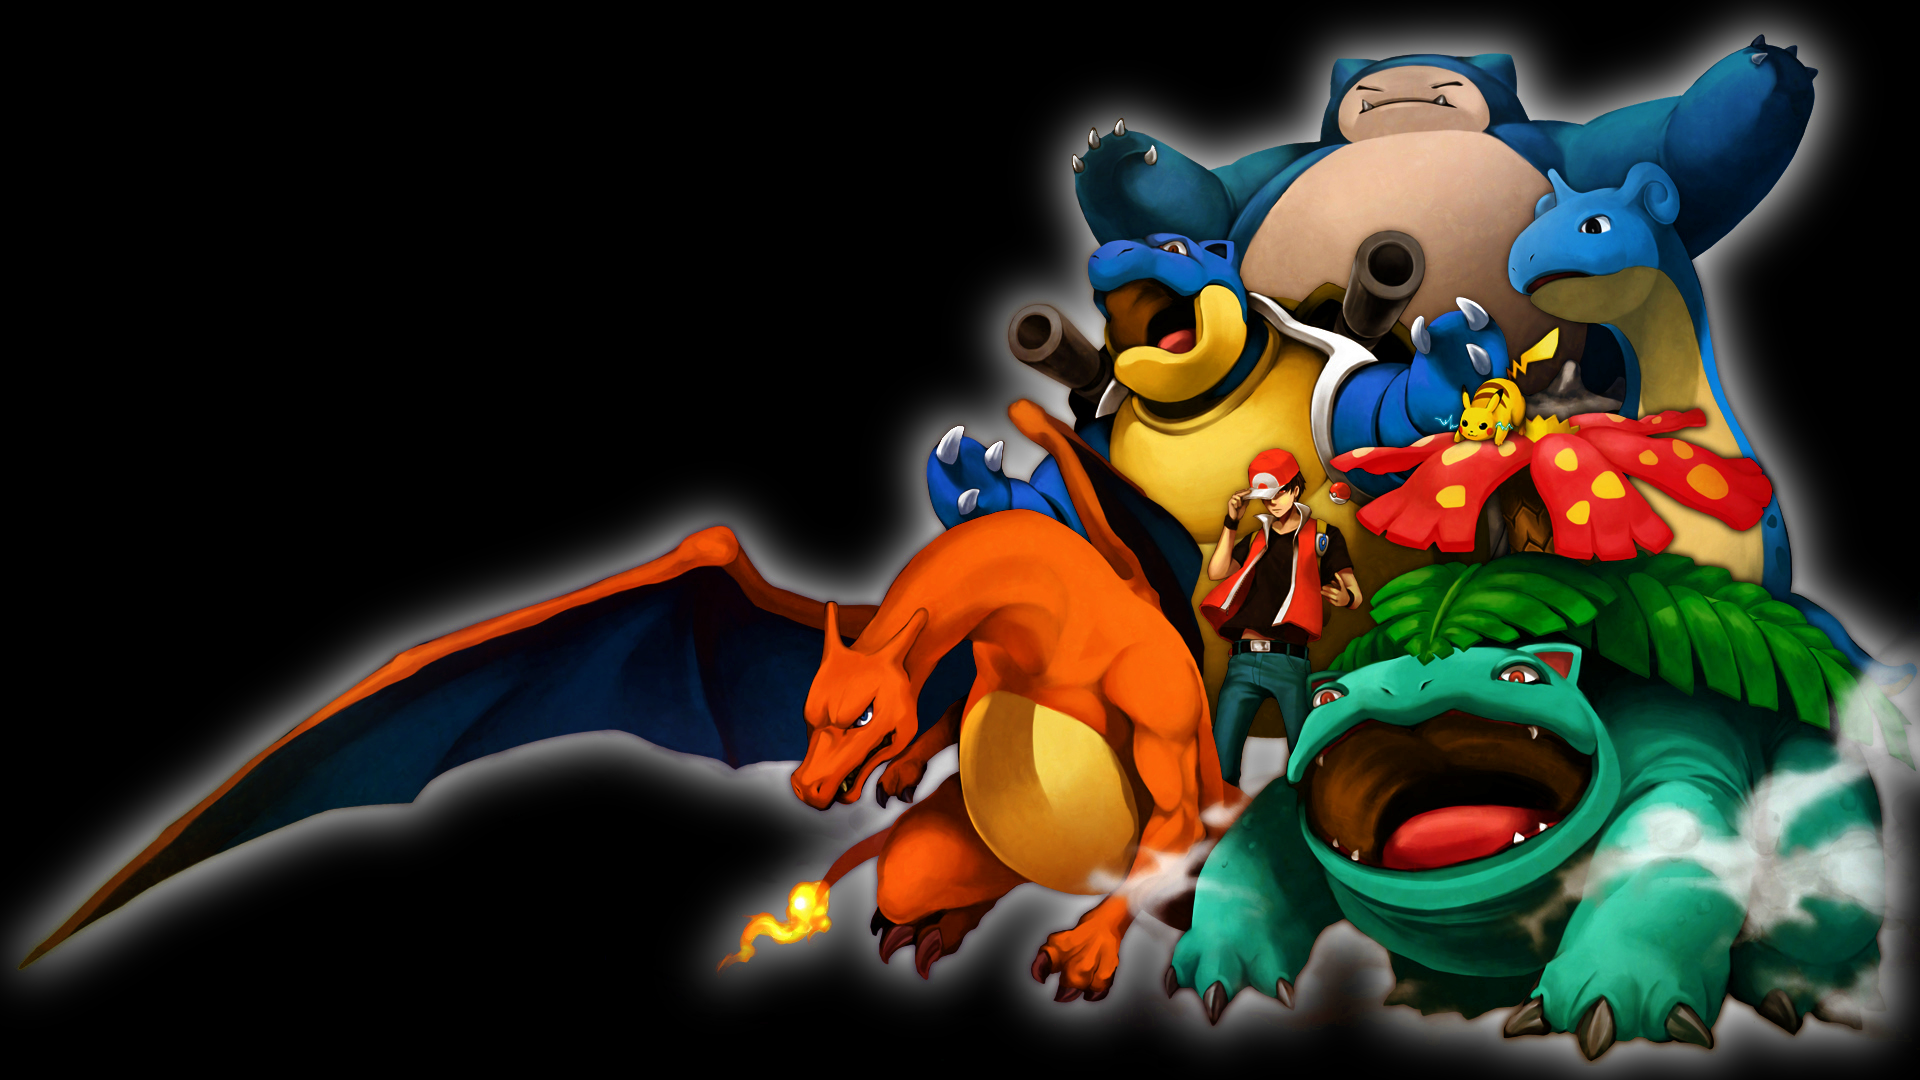 Pokemon Wallpaper Hd Downloads 9295 Wallpaper Cool Walldiskpaper 1920x1080